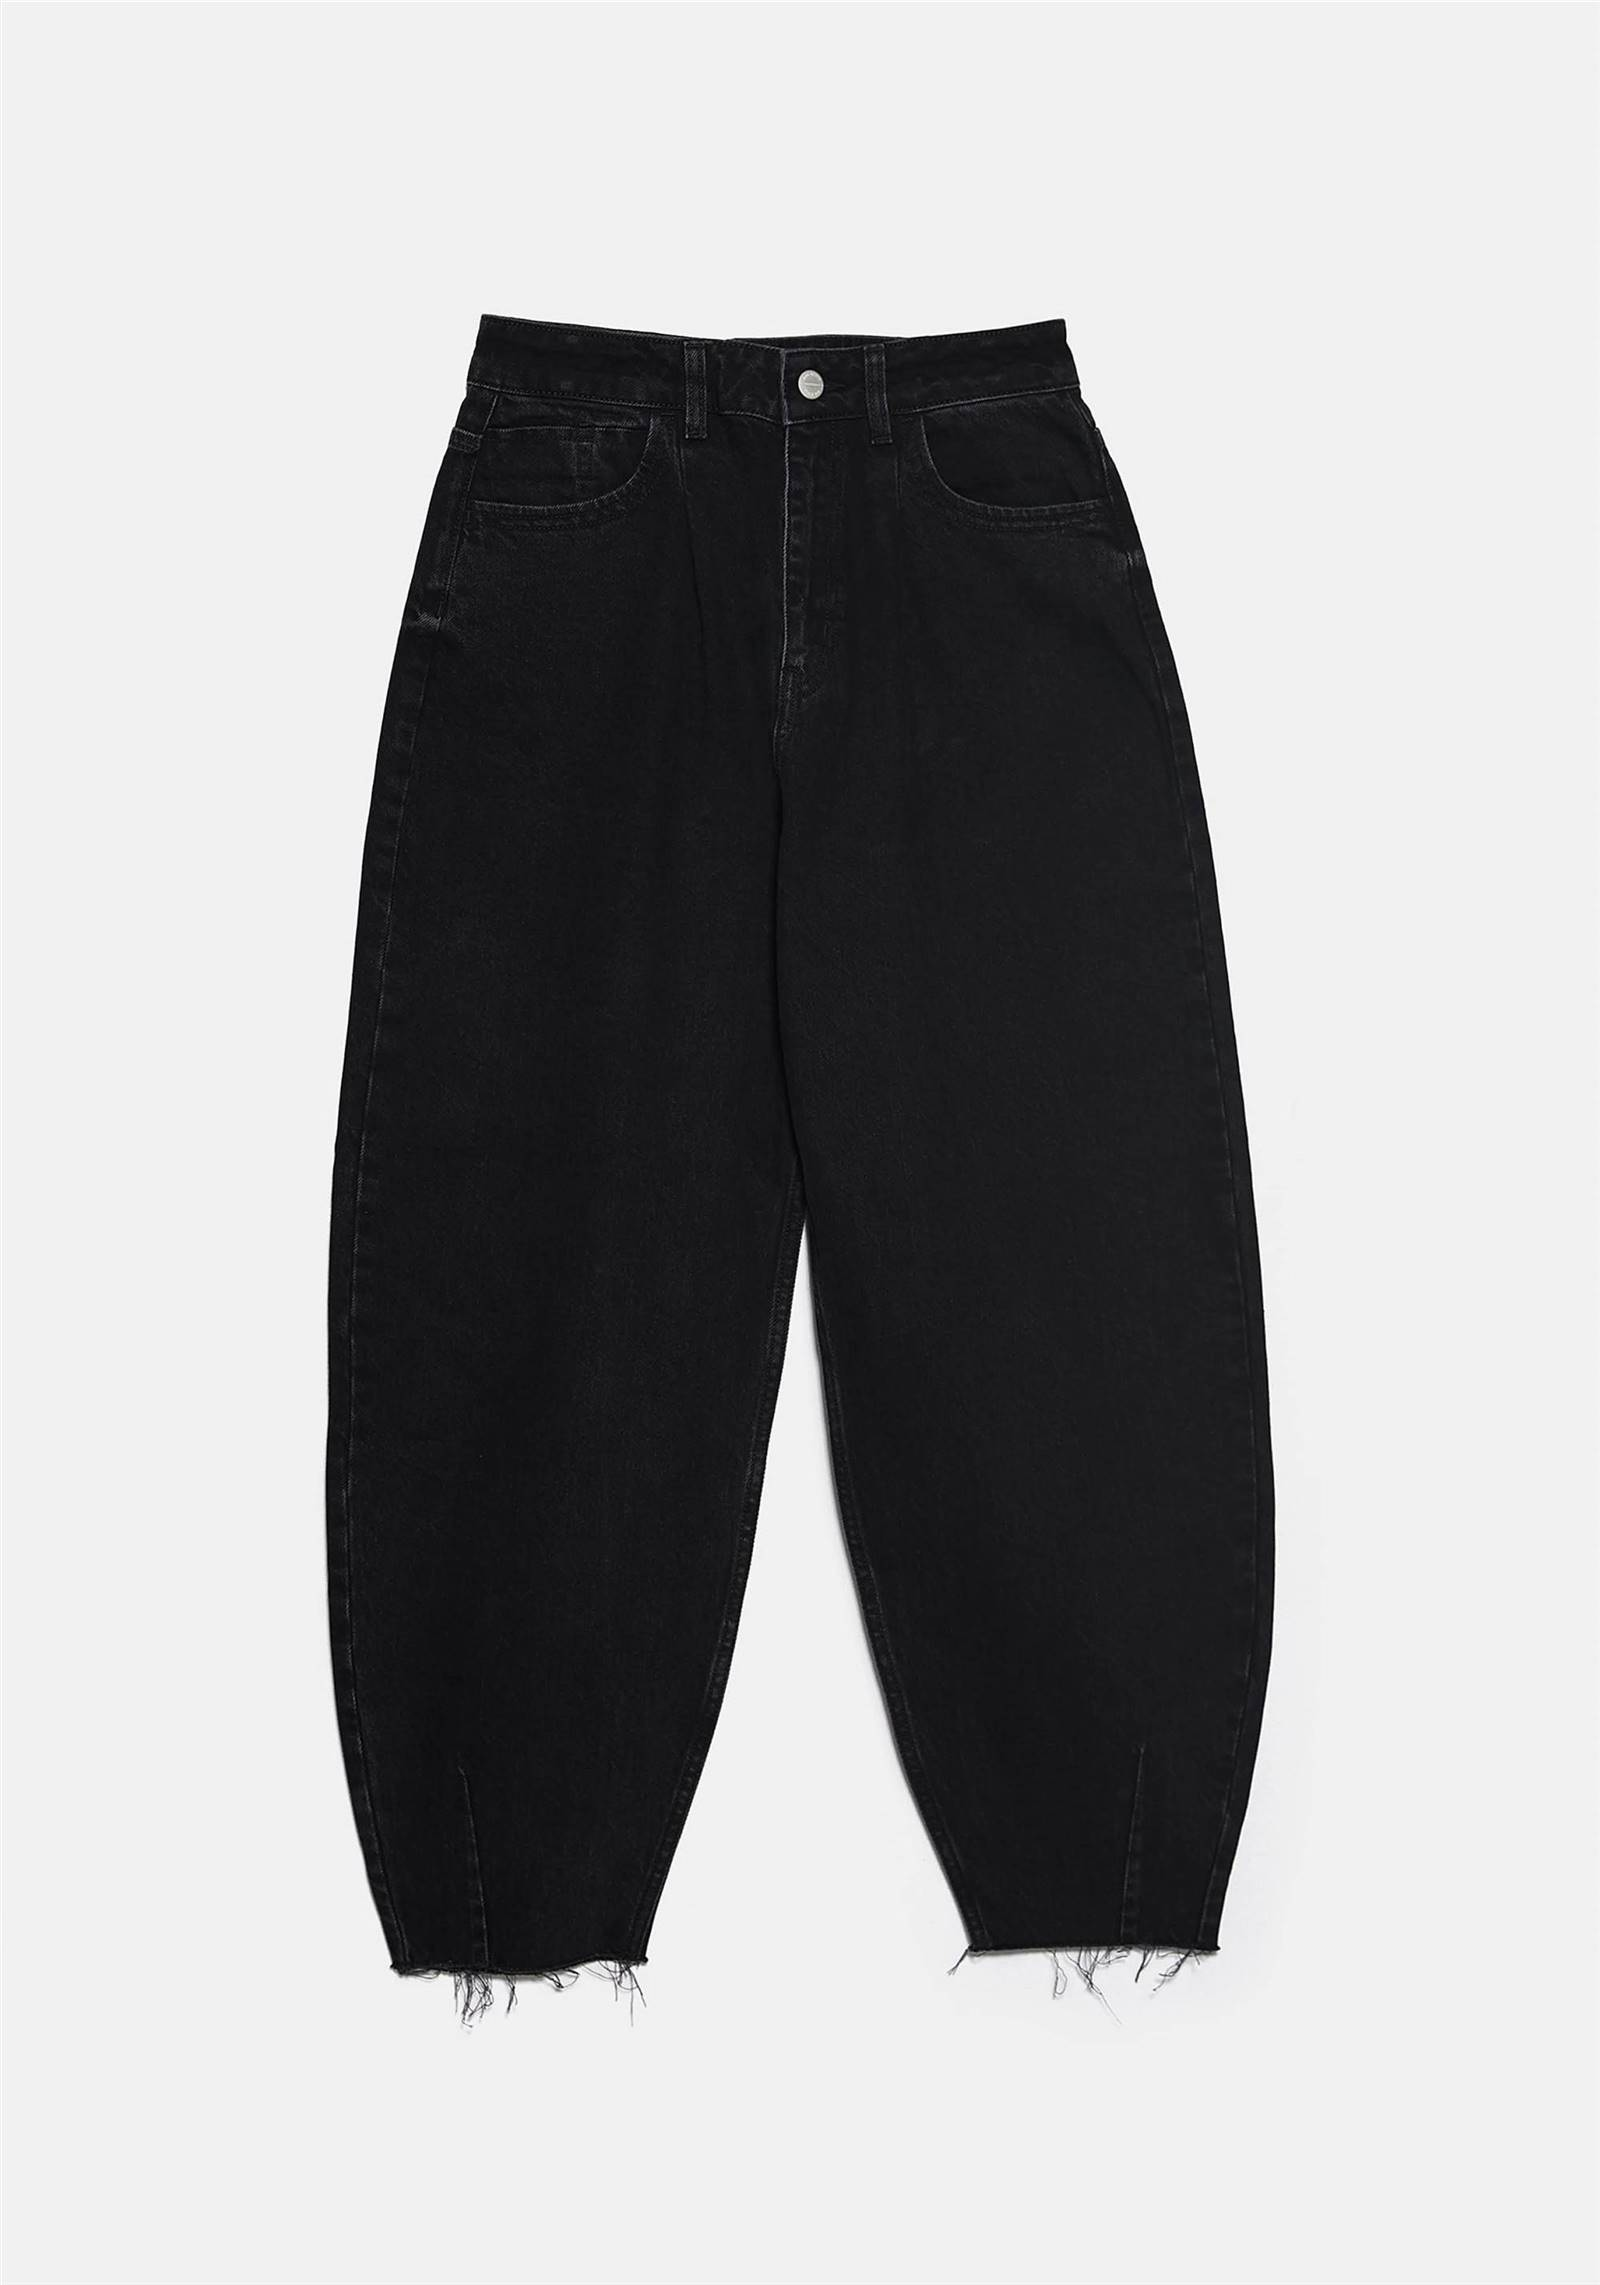 pantalon slouchy zara color negro